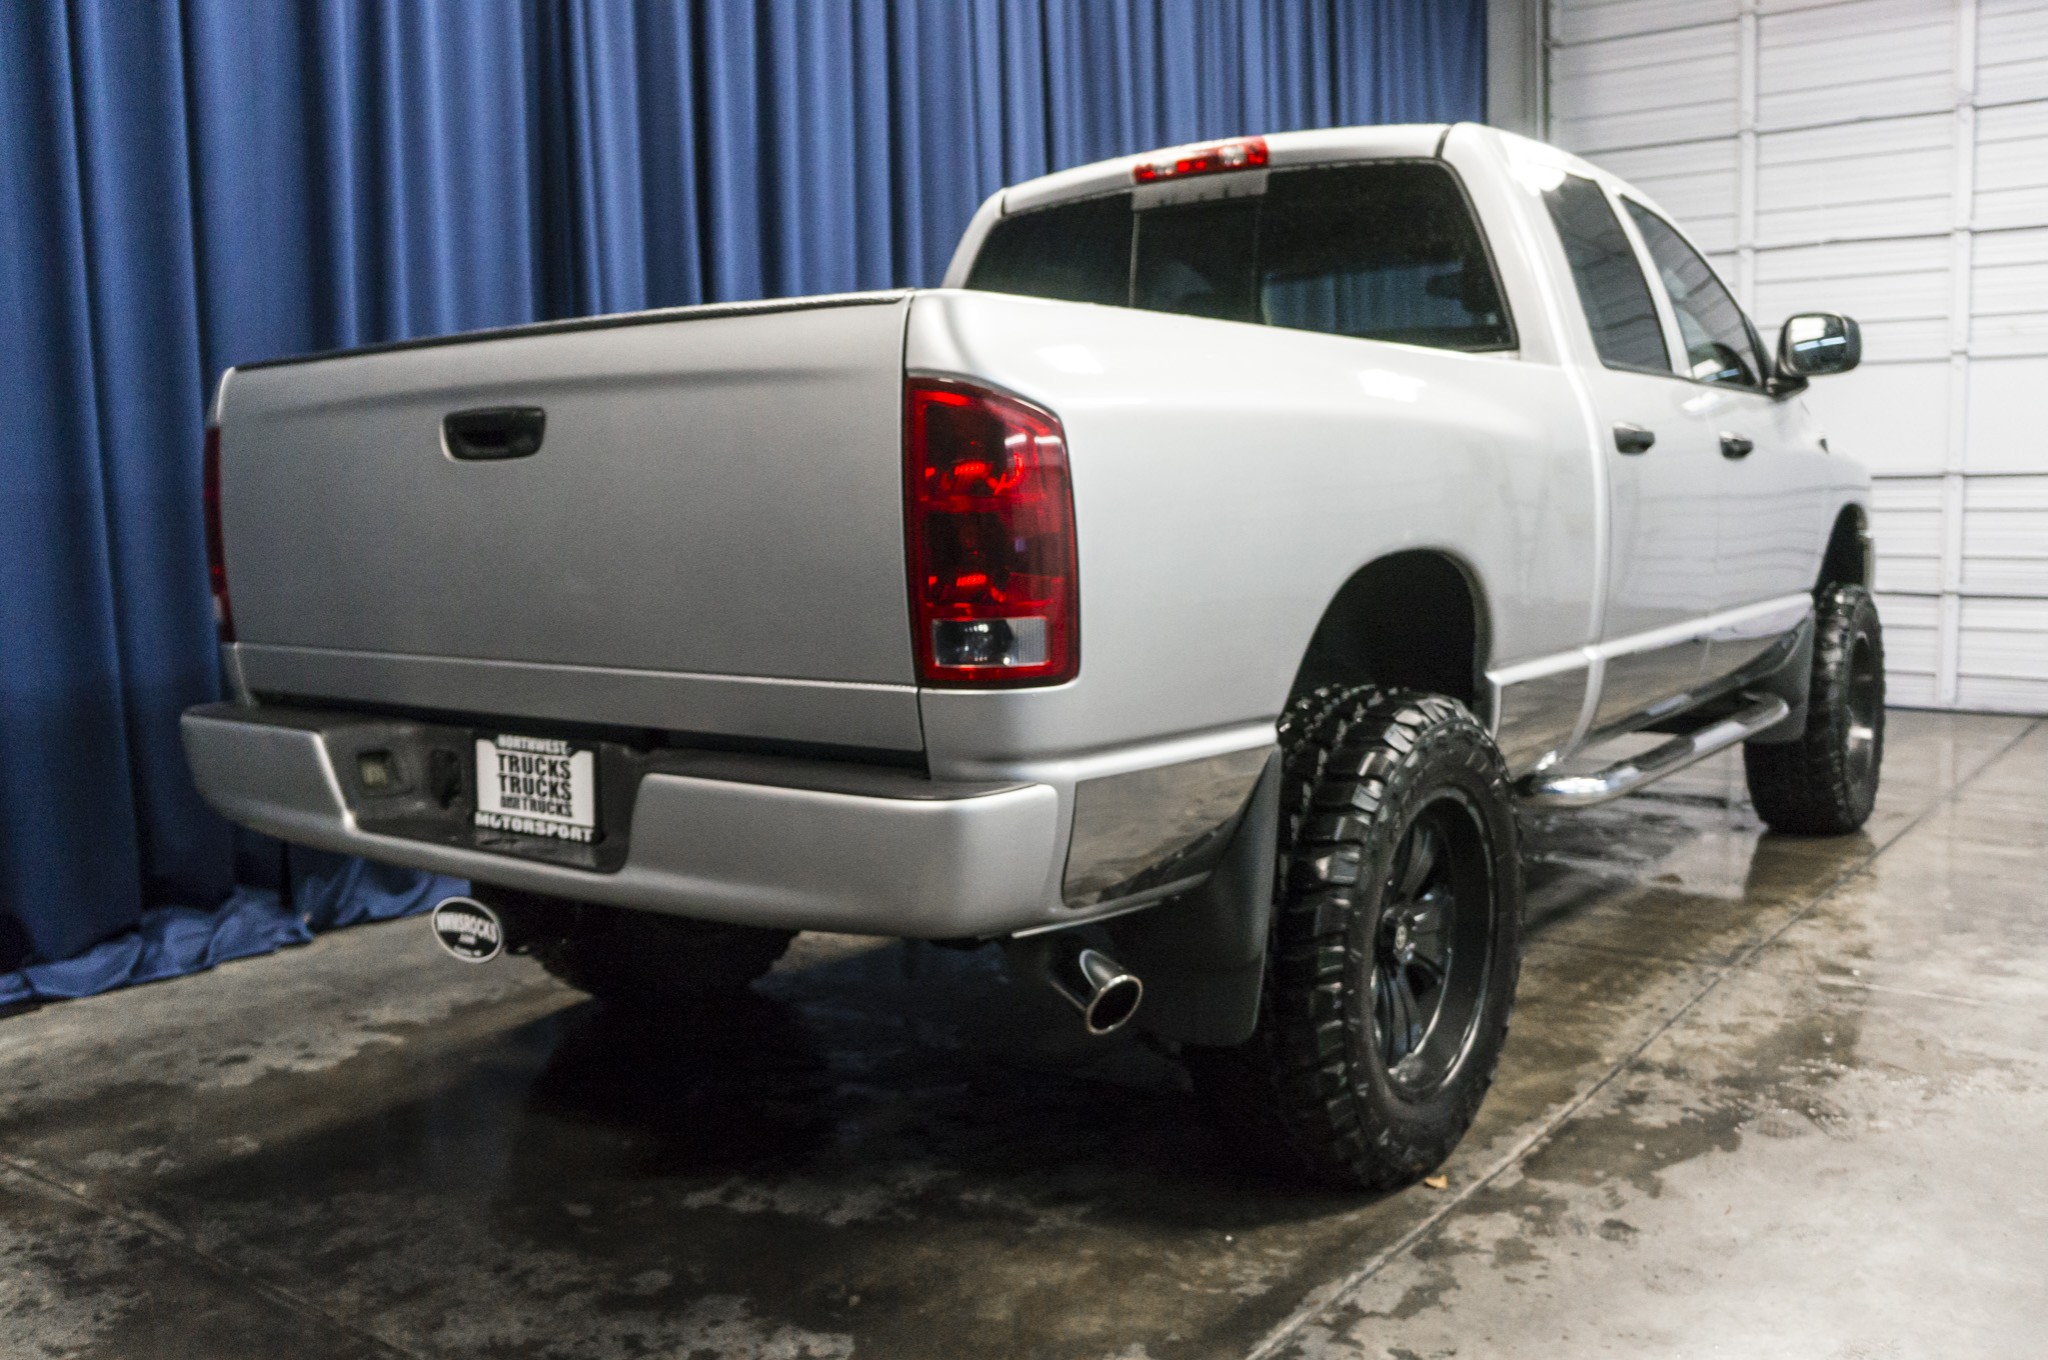 Used Lifted 2002 Dodge Ram 1500 4x4 Truck For Sale